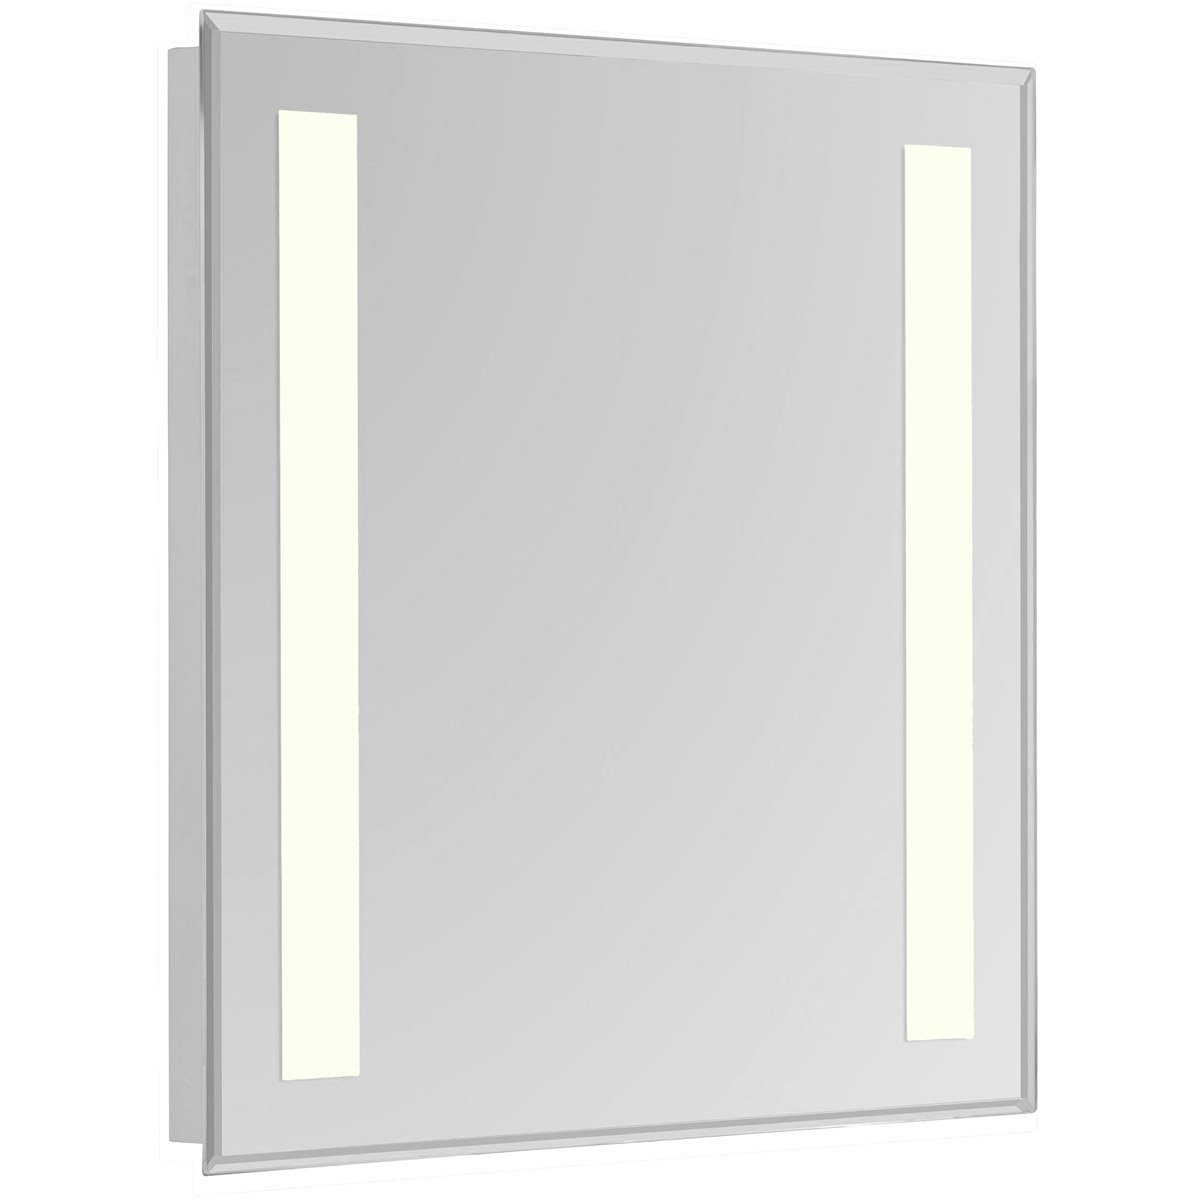 Nova 40 X 32 Hardwired Glossy White Led Wall Mirror (Mre-6315) Led Mirror